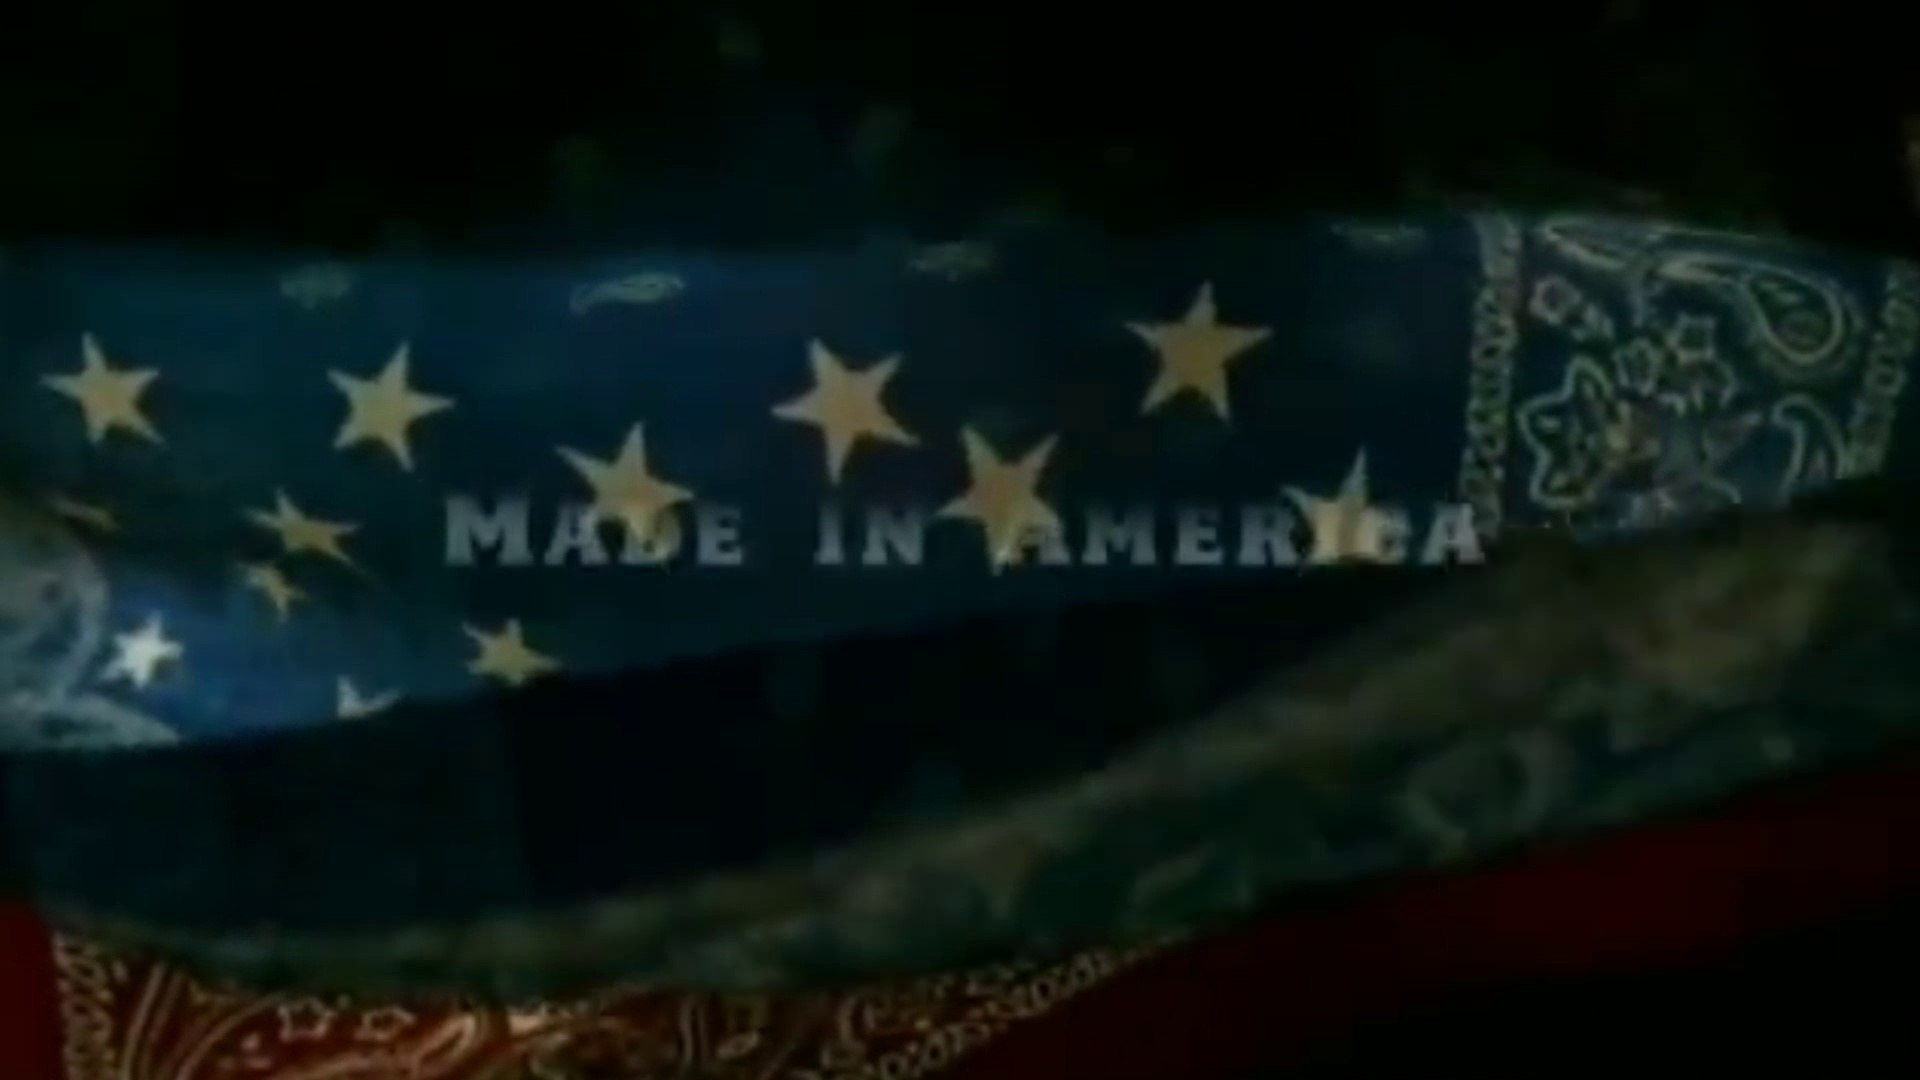 CRIPS and BLOODS - Made In America (2008) Trailer